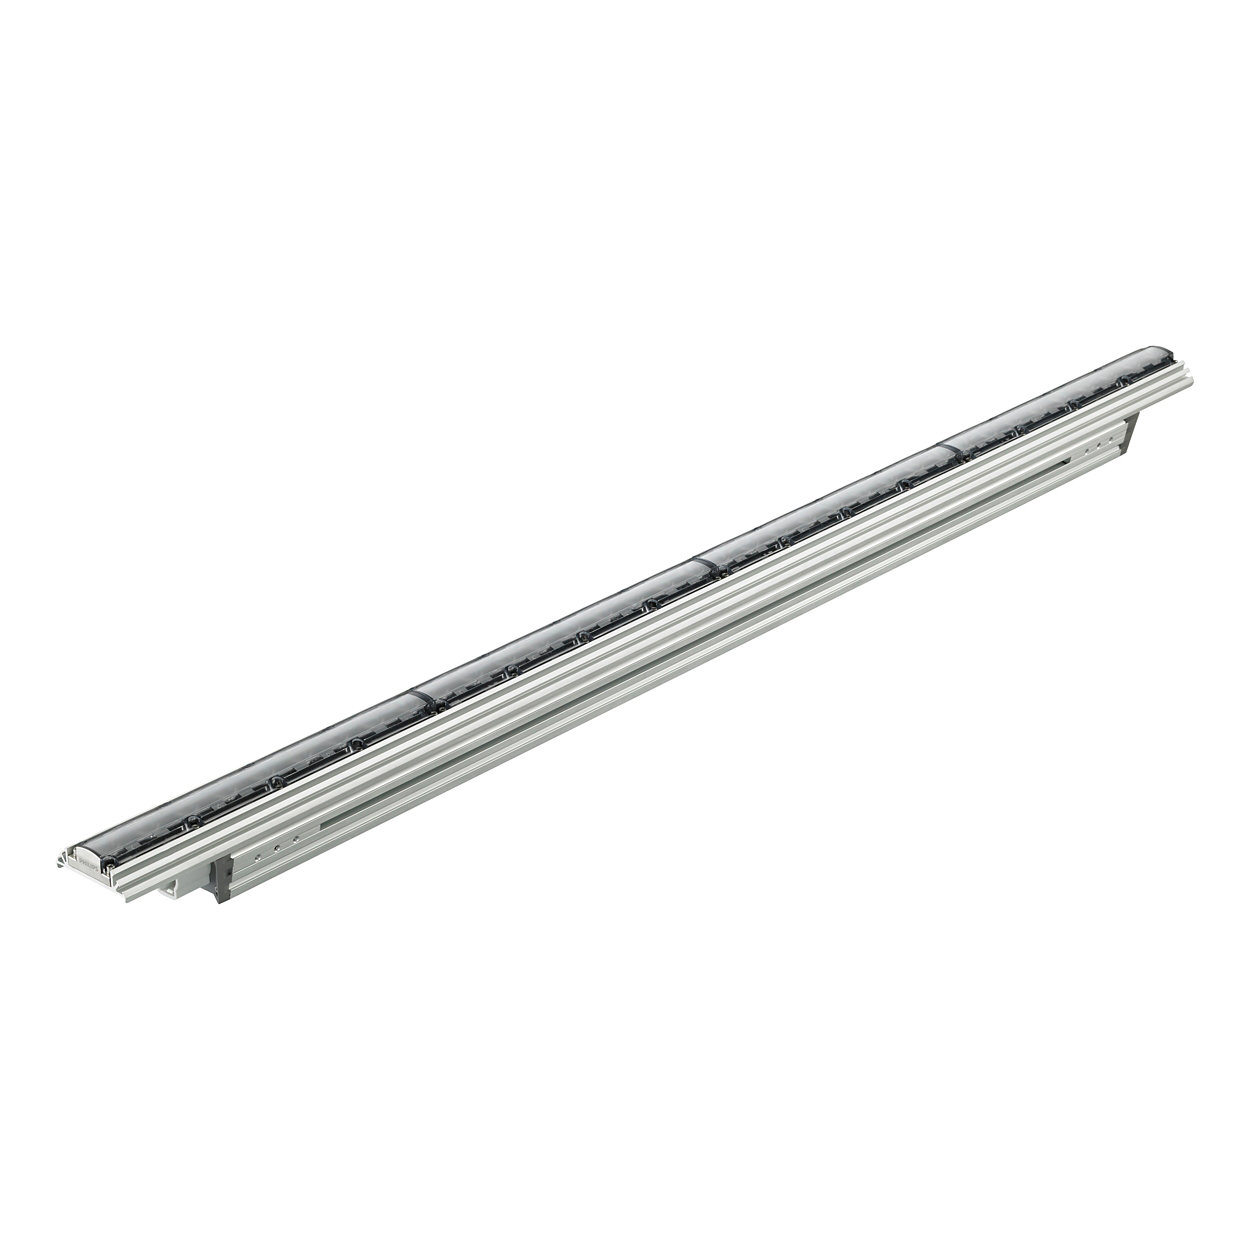 ColorGraze QLX Powercore - Performance linear exterior LED wall grazing luminaires with RGB light